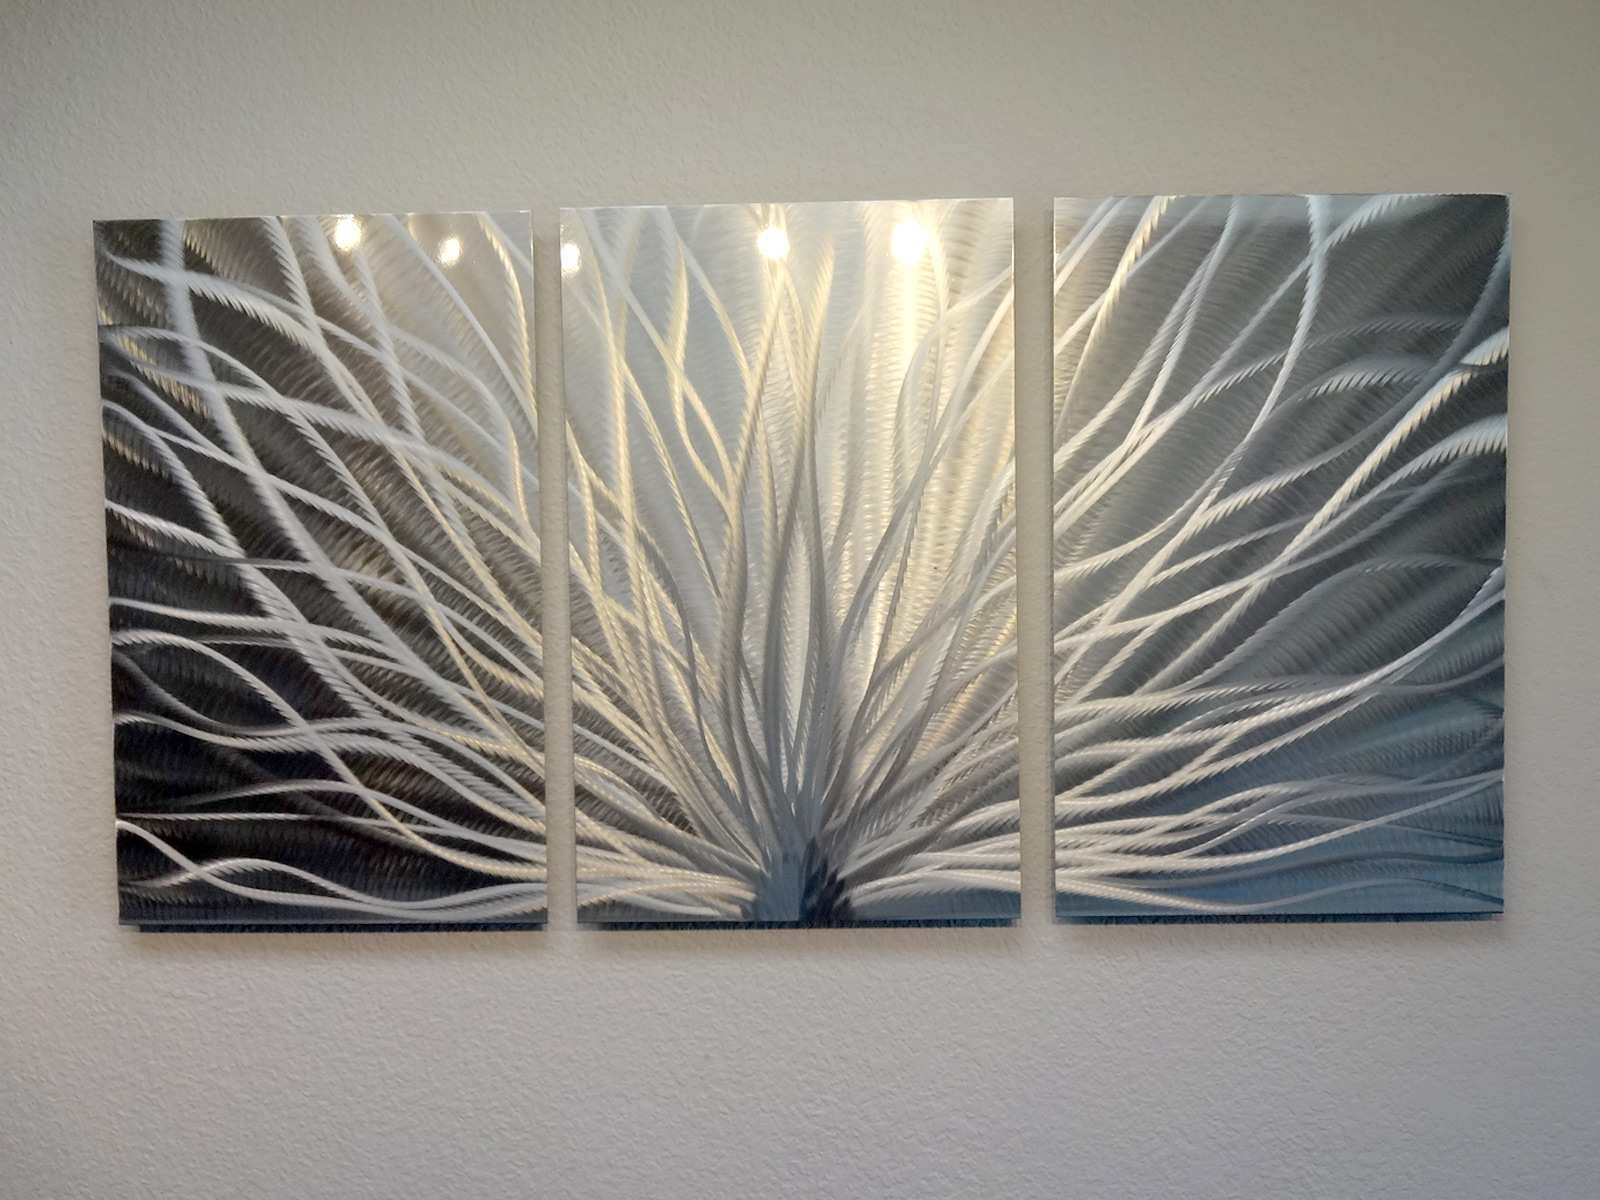 Painting Metal Elegant Radiance 3 Panel Metal Wall Art Abstract With Regard To Cheap Metal Wall Art (Photo 4 of 20)